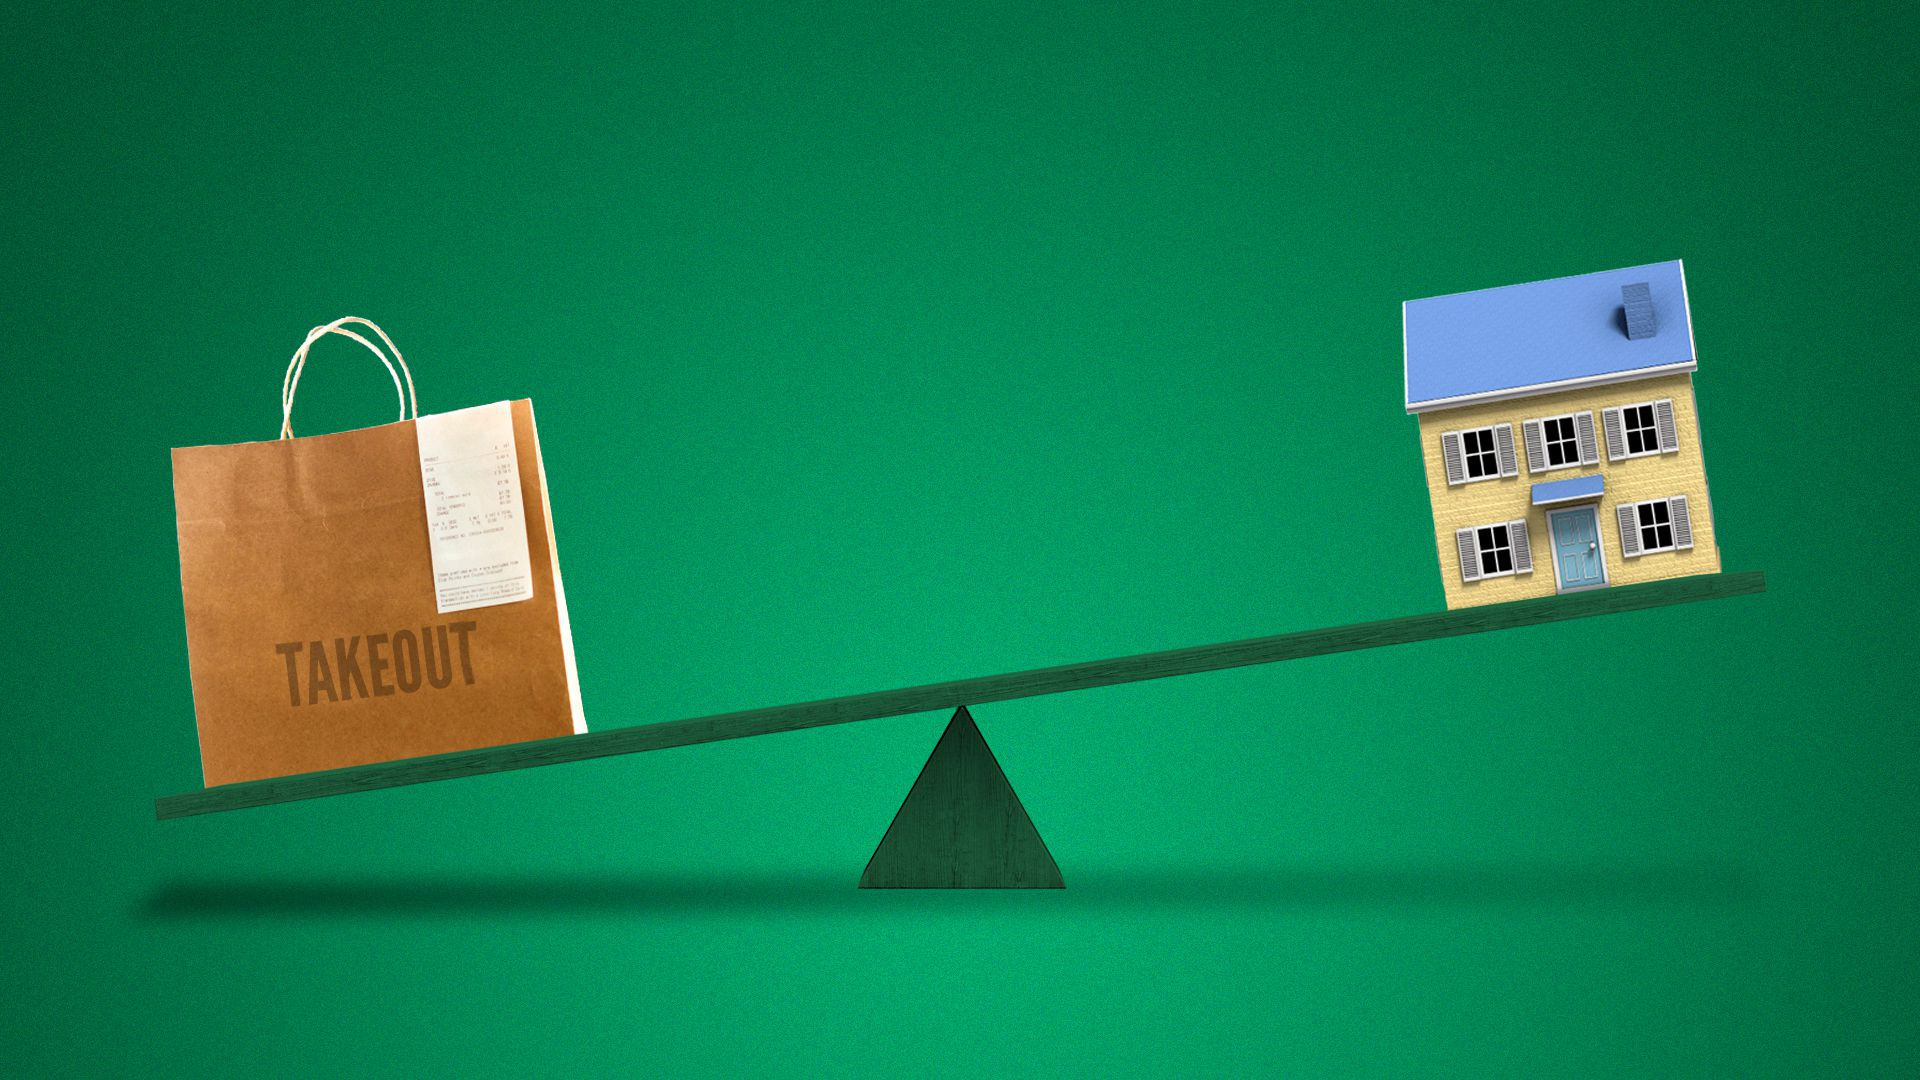 Illustration of a takeout bag and a house on a seesaw, with the house on the higher side.